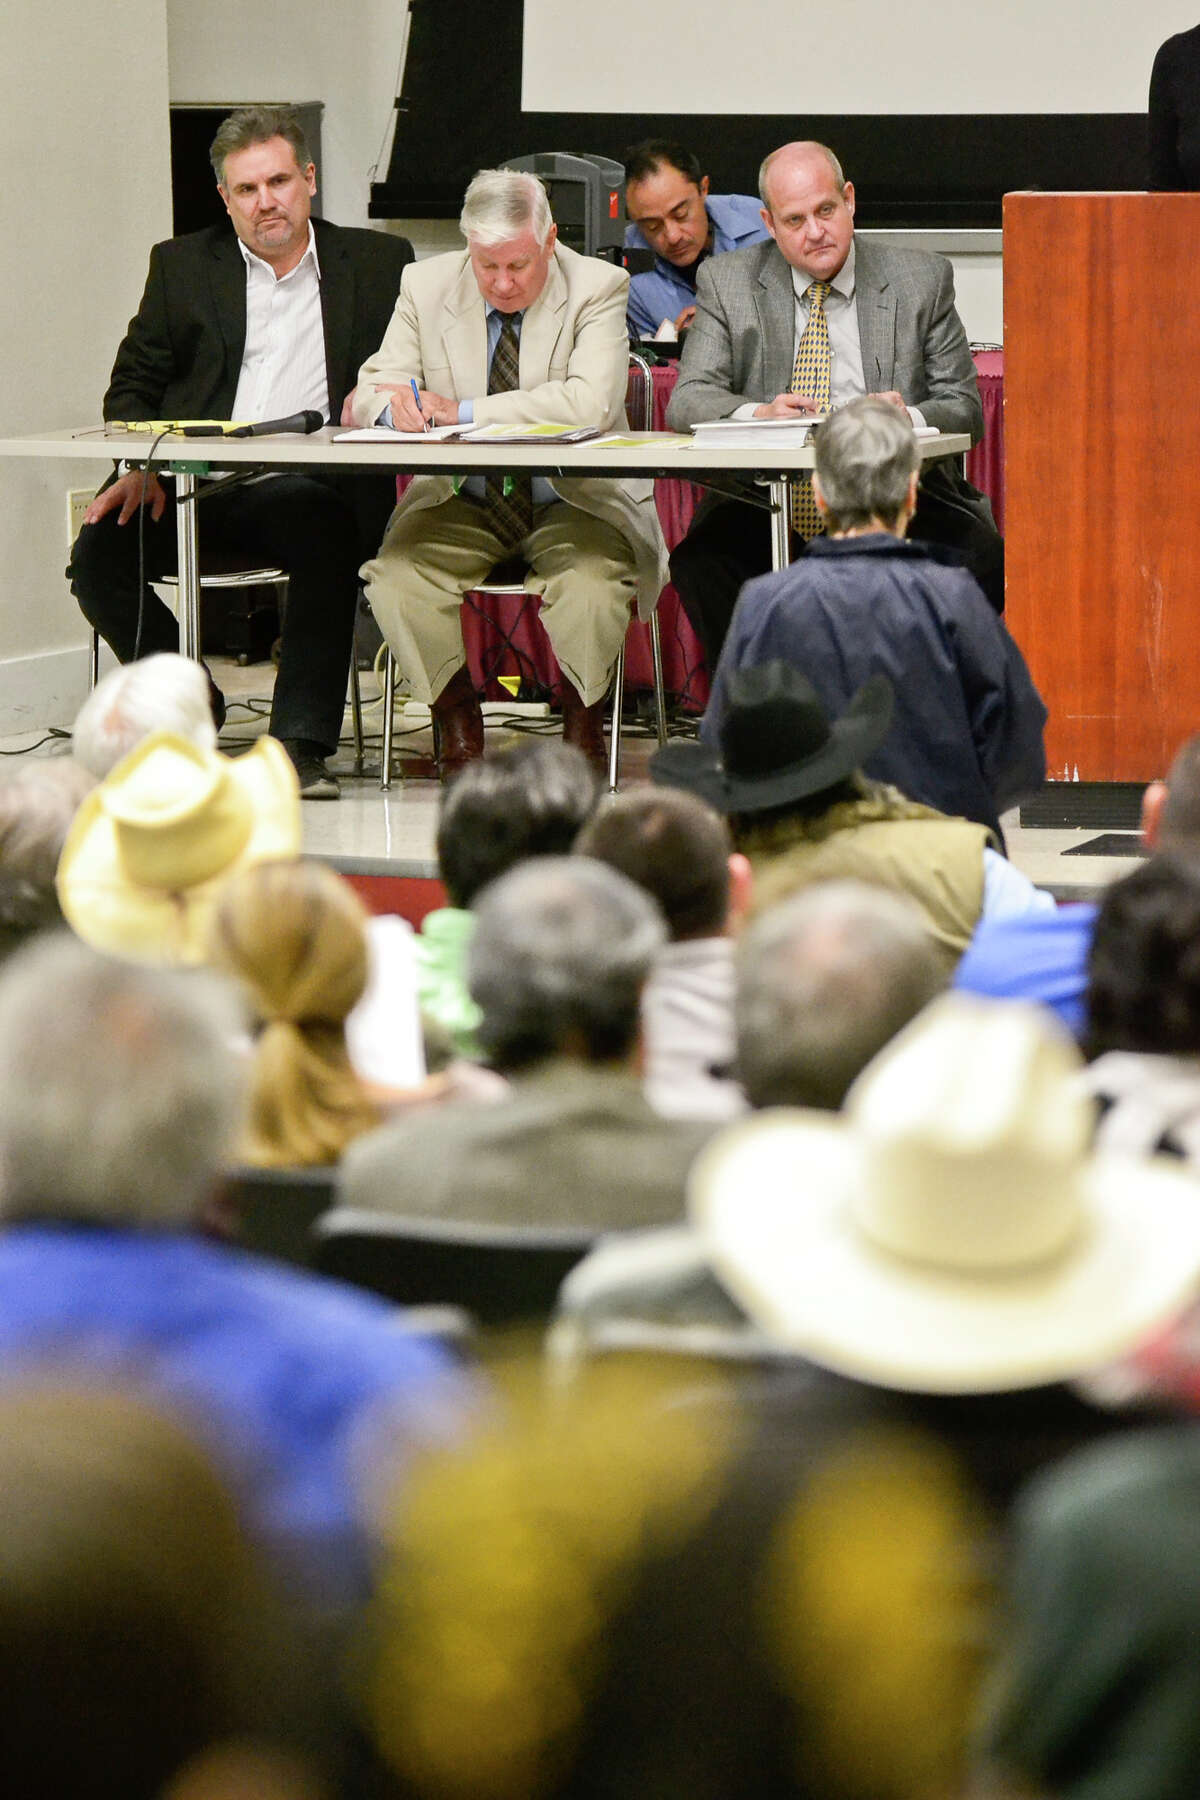 C.Y. Benavides III (from left), Pierce Chandler and John Shaw listen to concerns brought up by residents living near the proposed landfill site in Webb County at a 2013 hearing. Recently, the state gave it a draft permit to open.